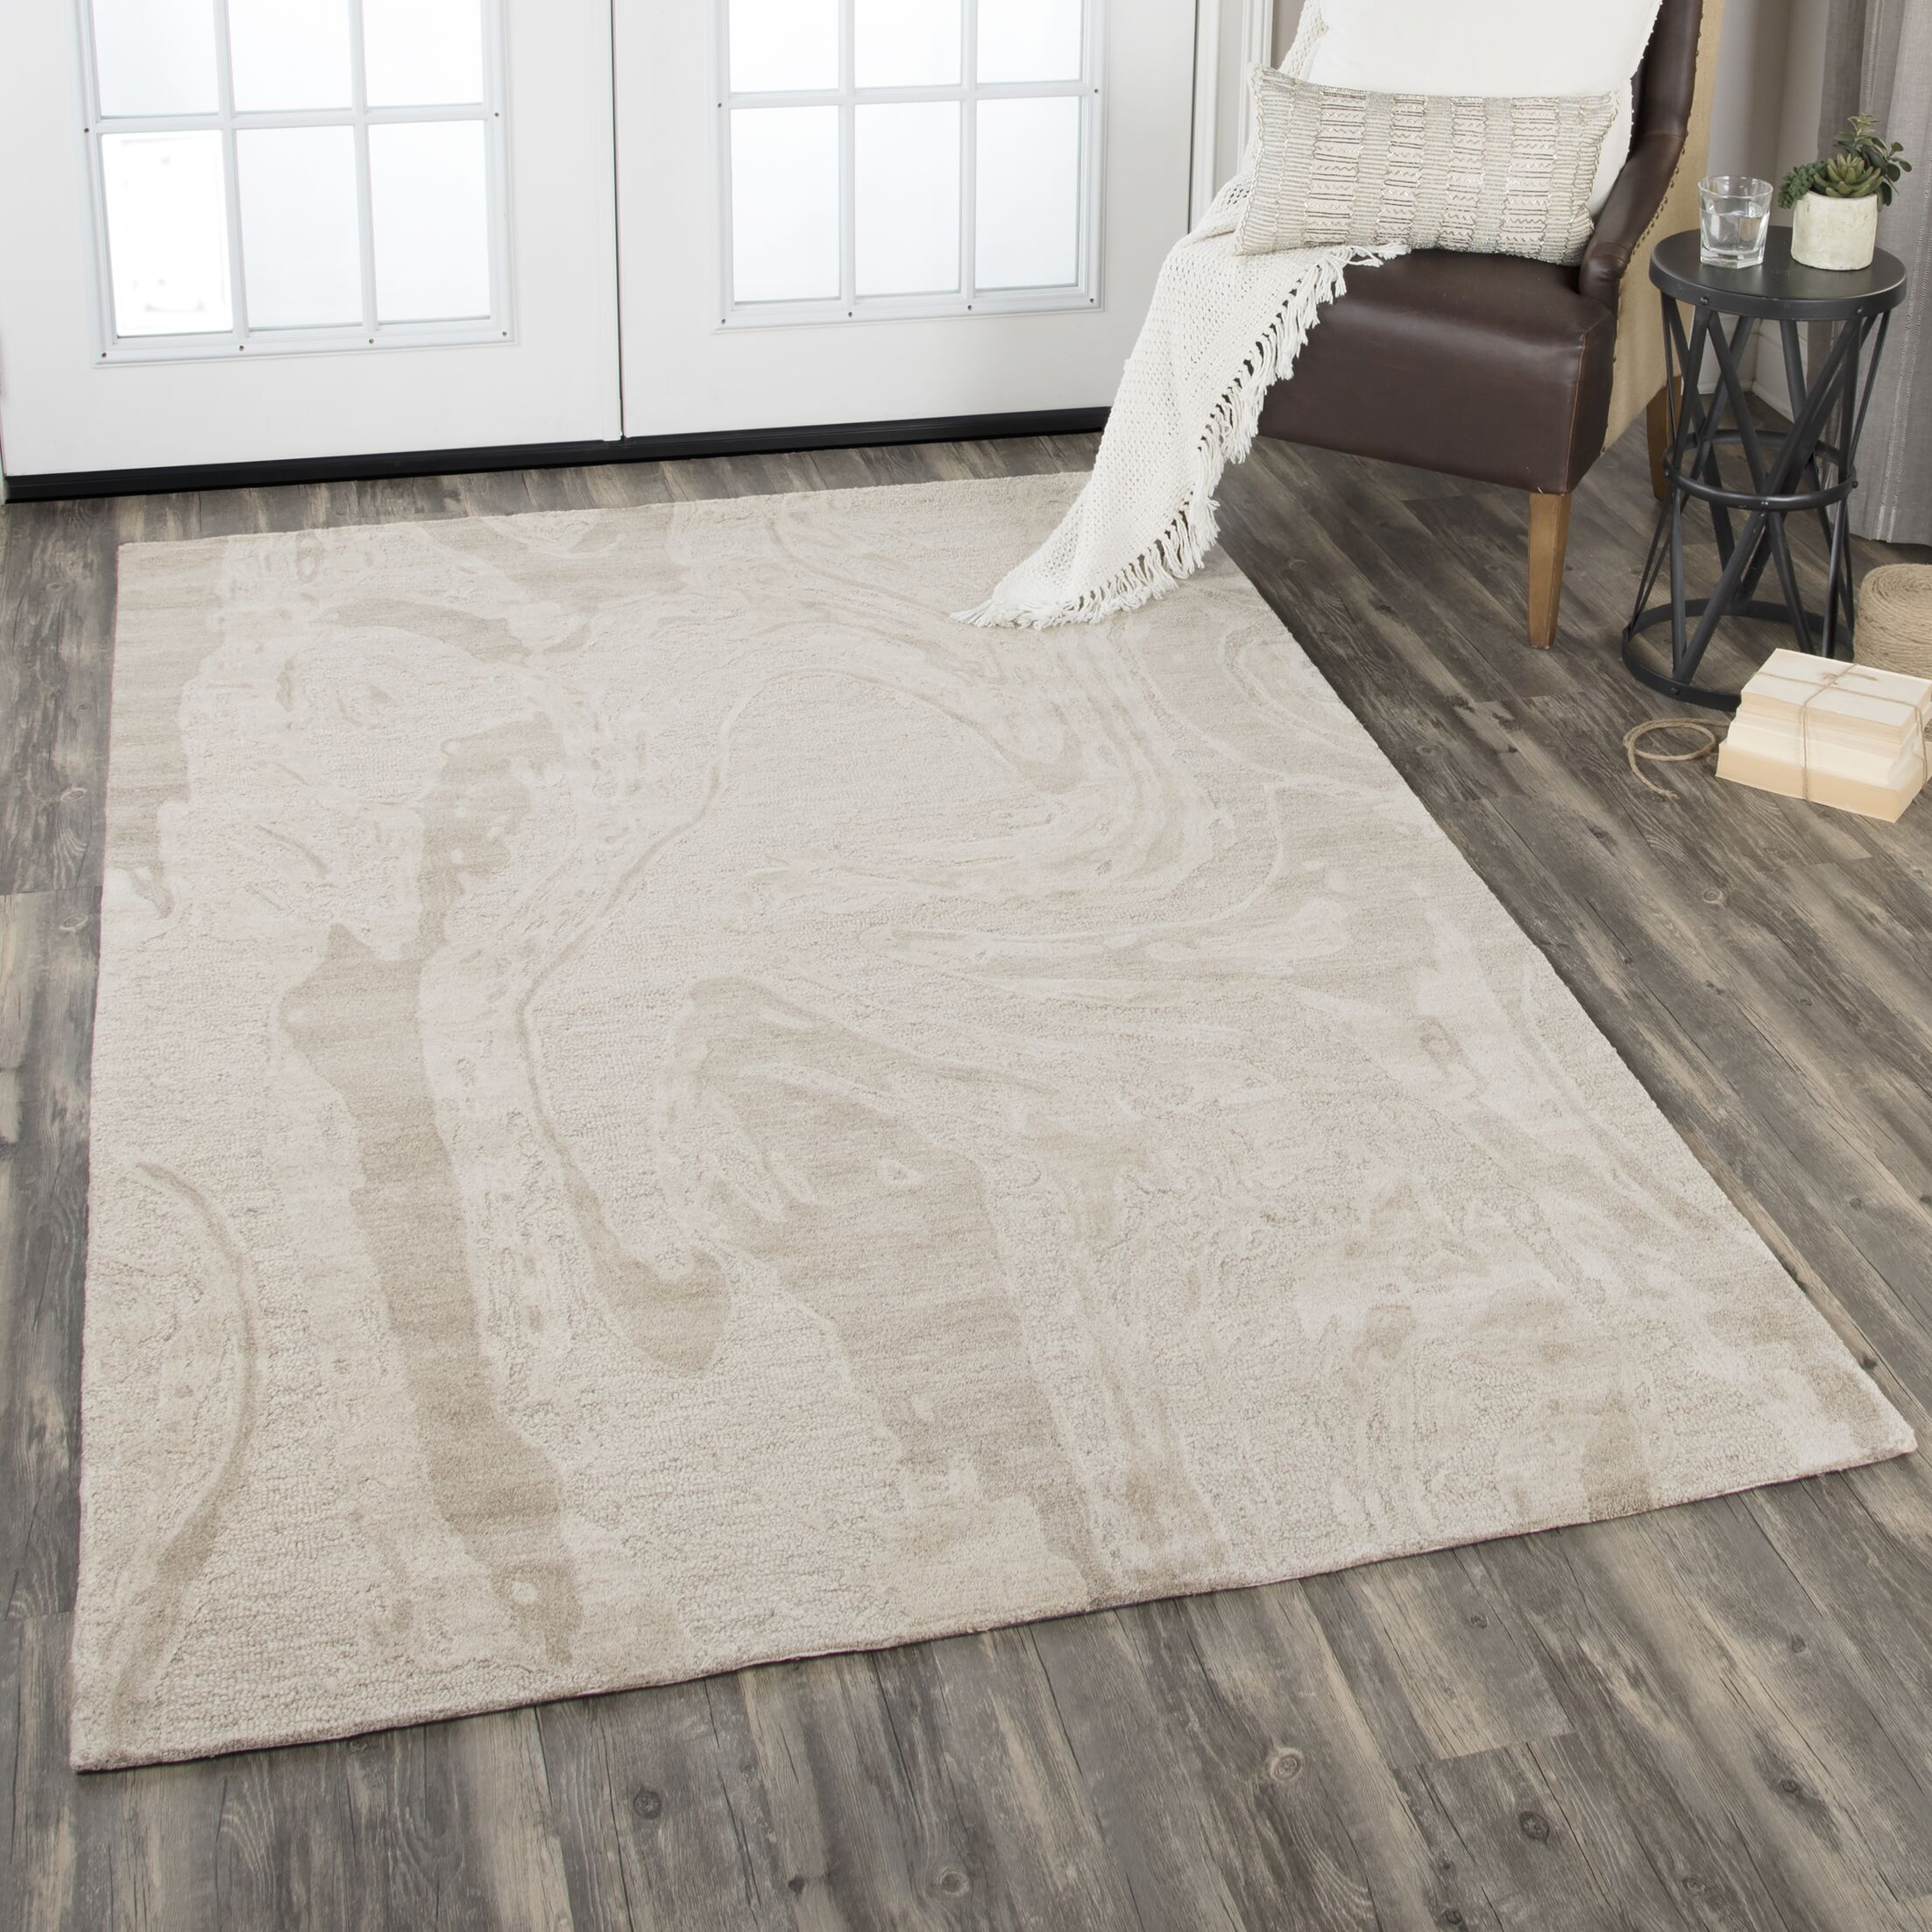 Etheredge Hand-Tufted Wool Beige Area Rug Rug Size: Rectangle 10' x 13'